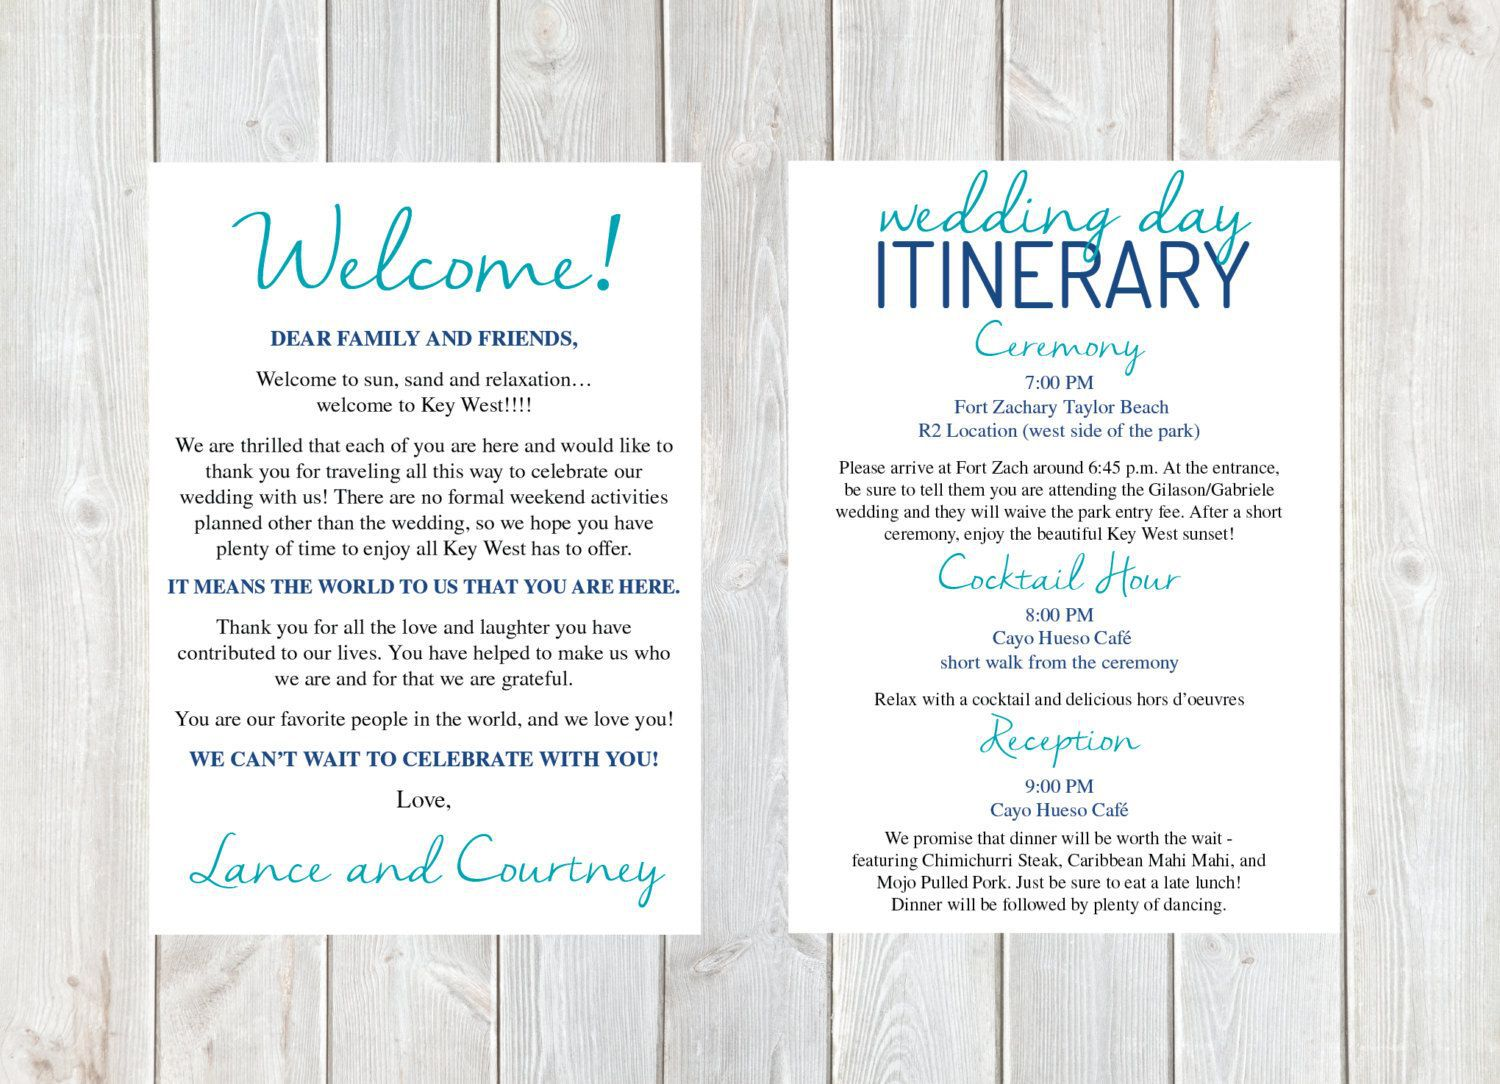 003 Exceptional Cruise Wedding Welcome Letter Template Concept Full